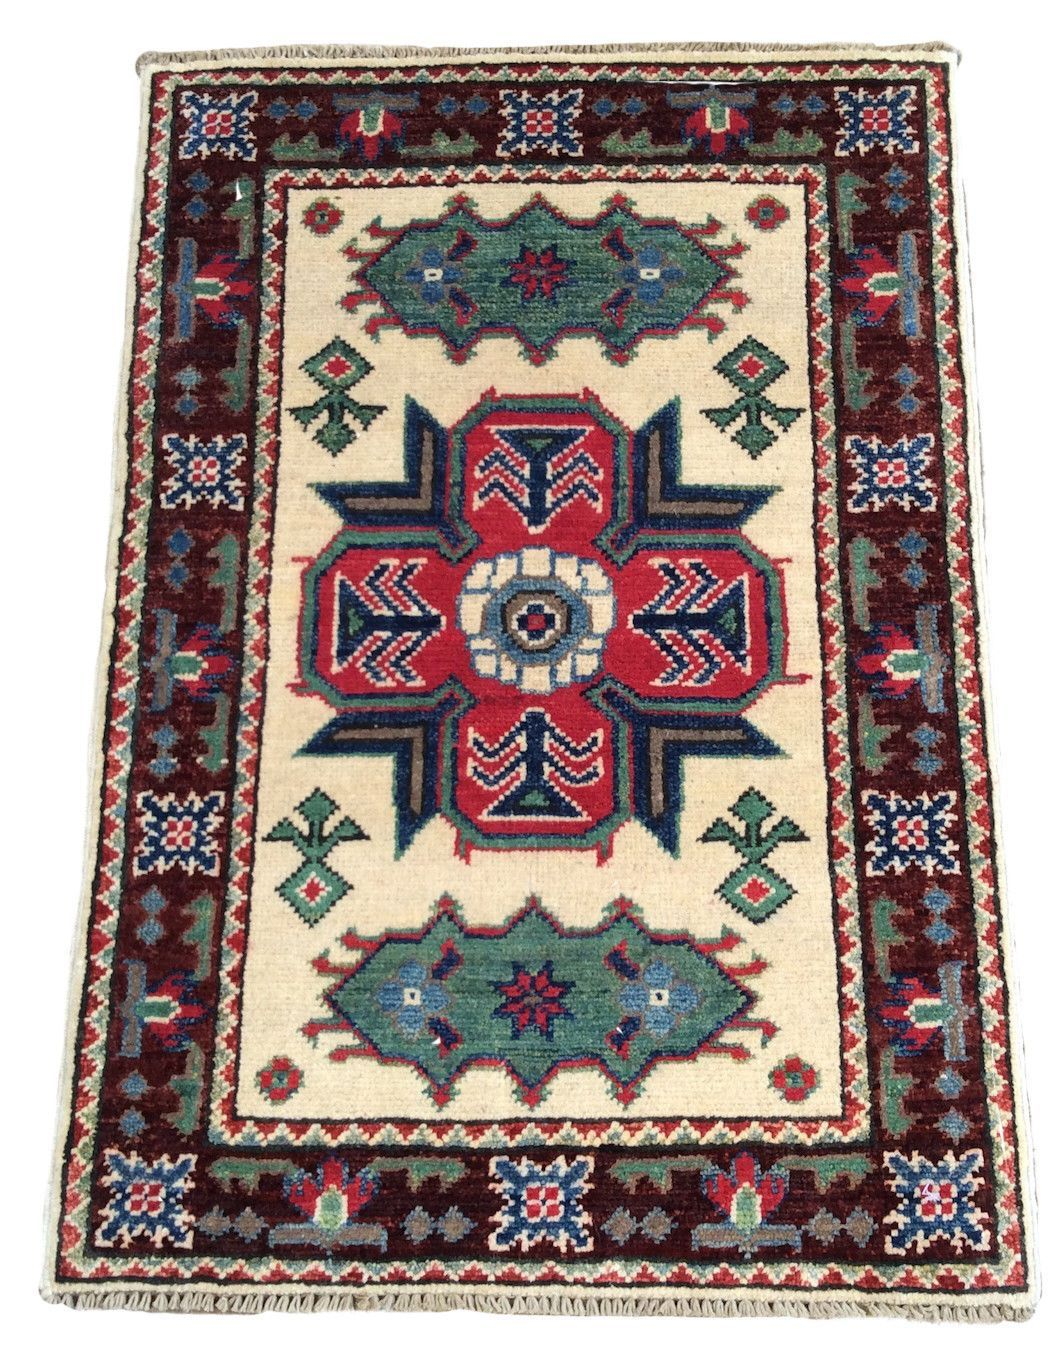 Oriental rugs, hand-knotted carpets, sustainable rugs, classic world oriental rugs, handmade, United States, interior design,  Brrsf-987